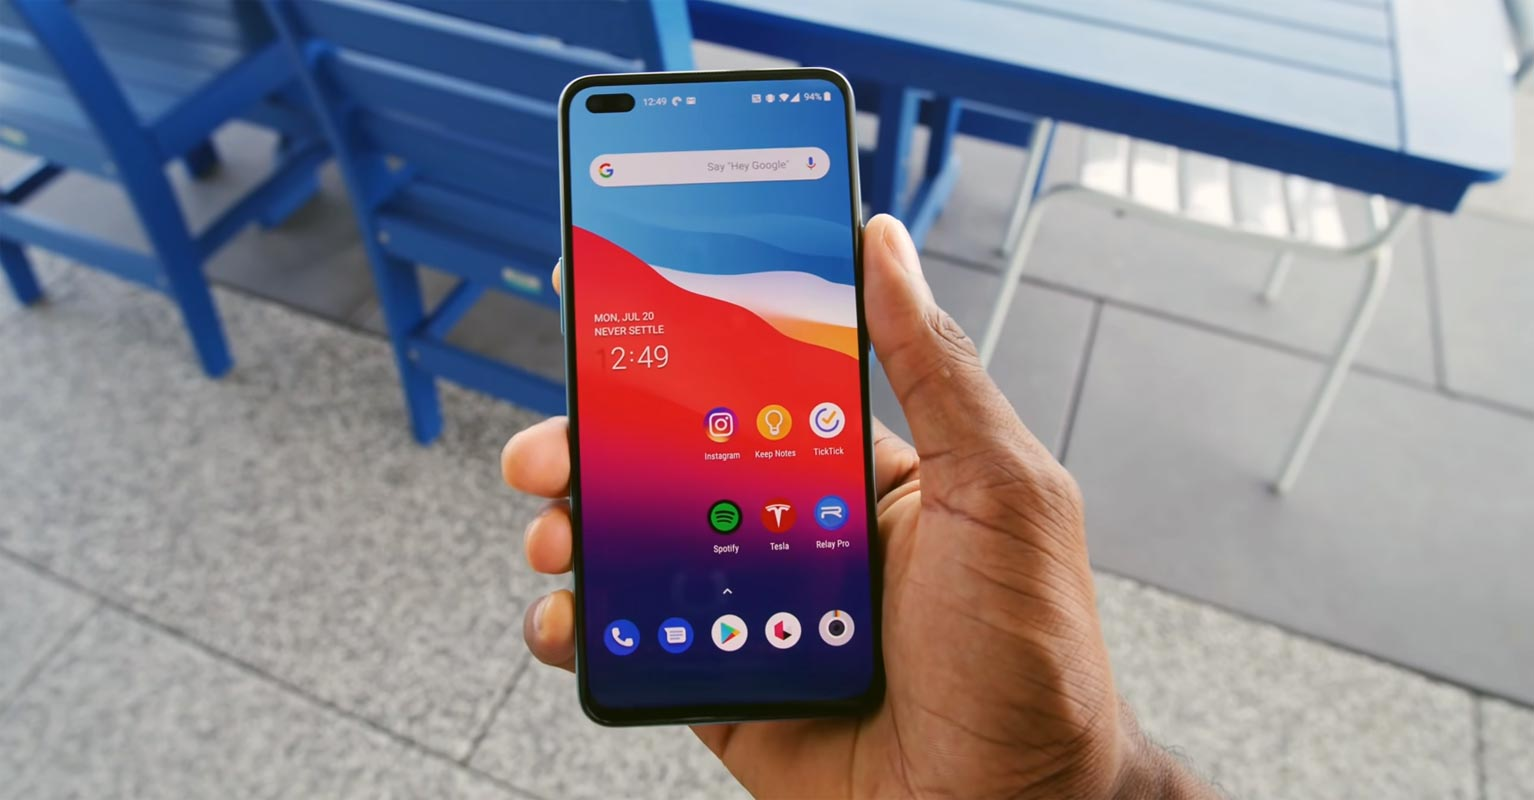 OnePlus Nord Unlocked Home Screen in hand